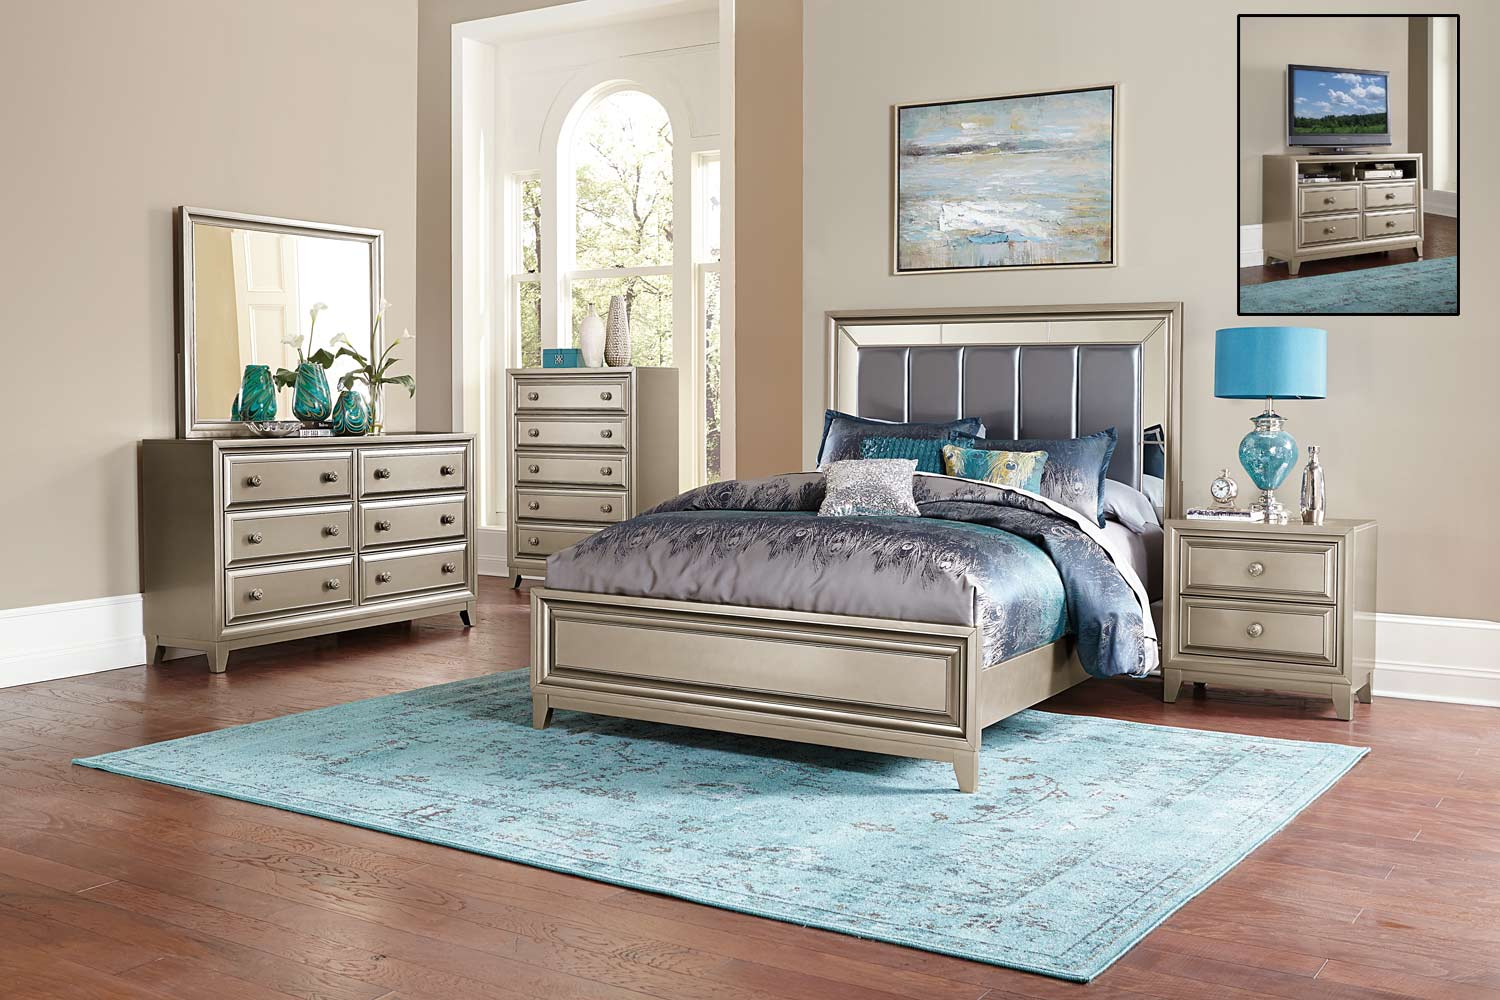 Homelegance Hedy Bedroom Set - silver